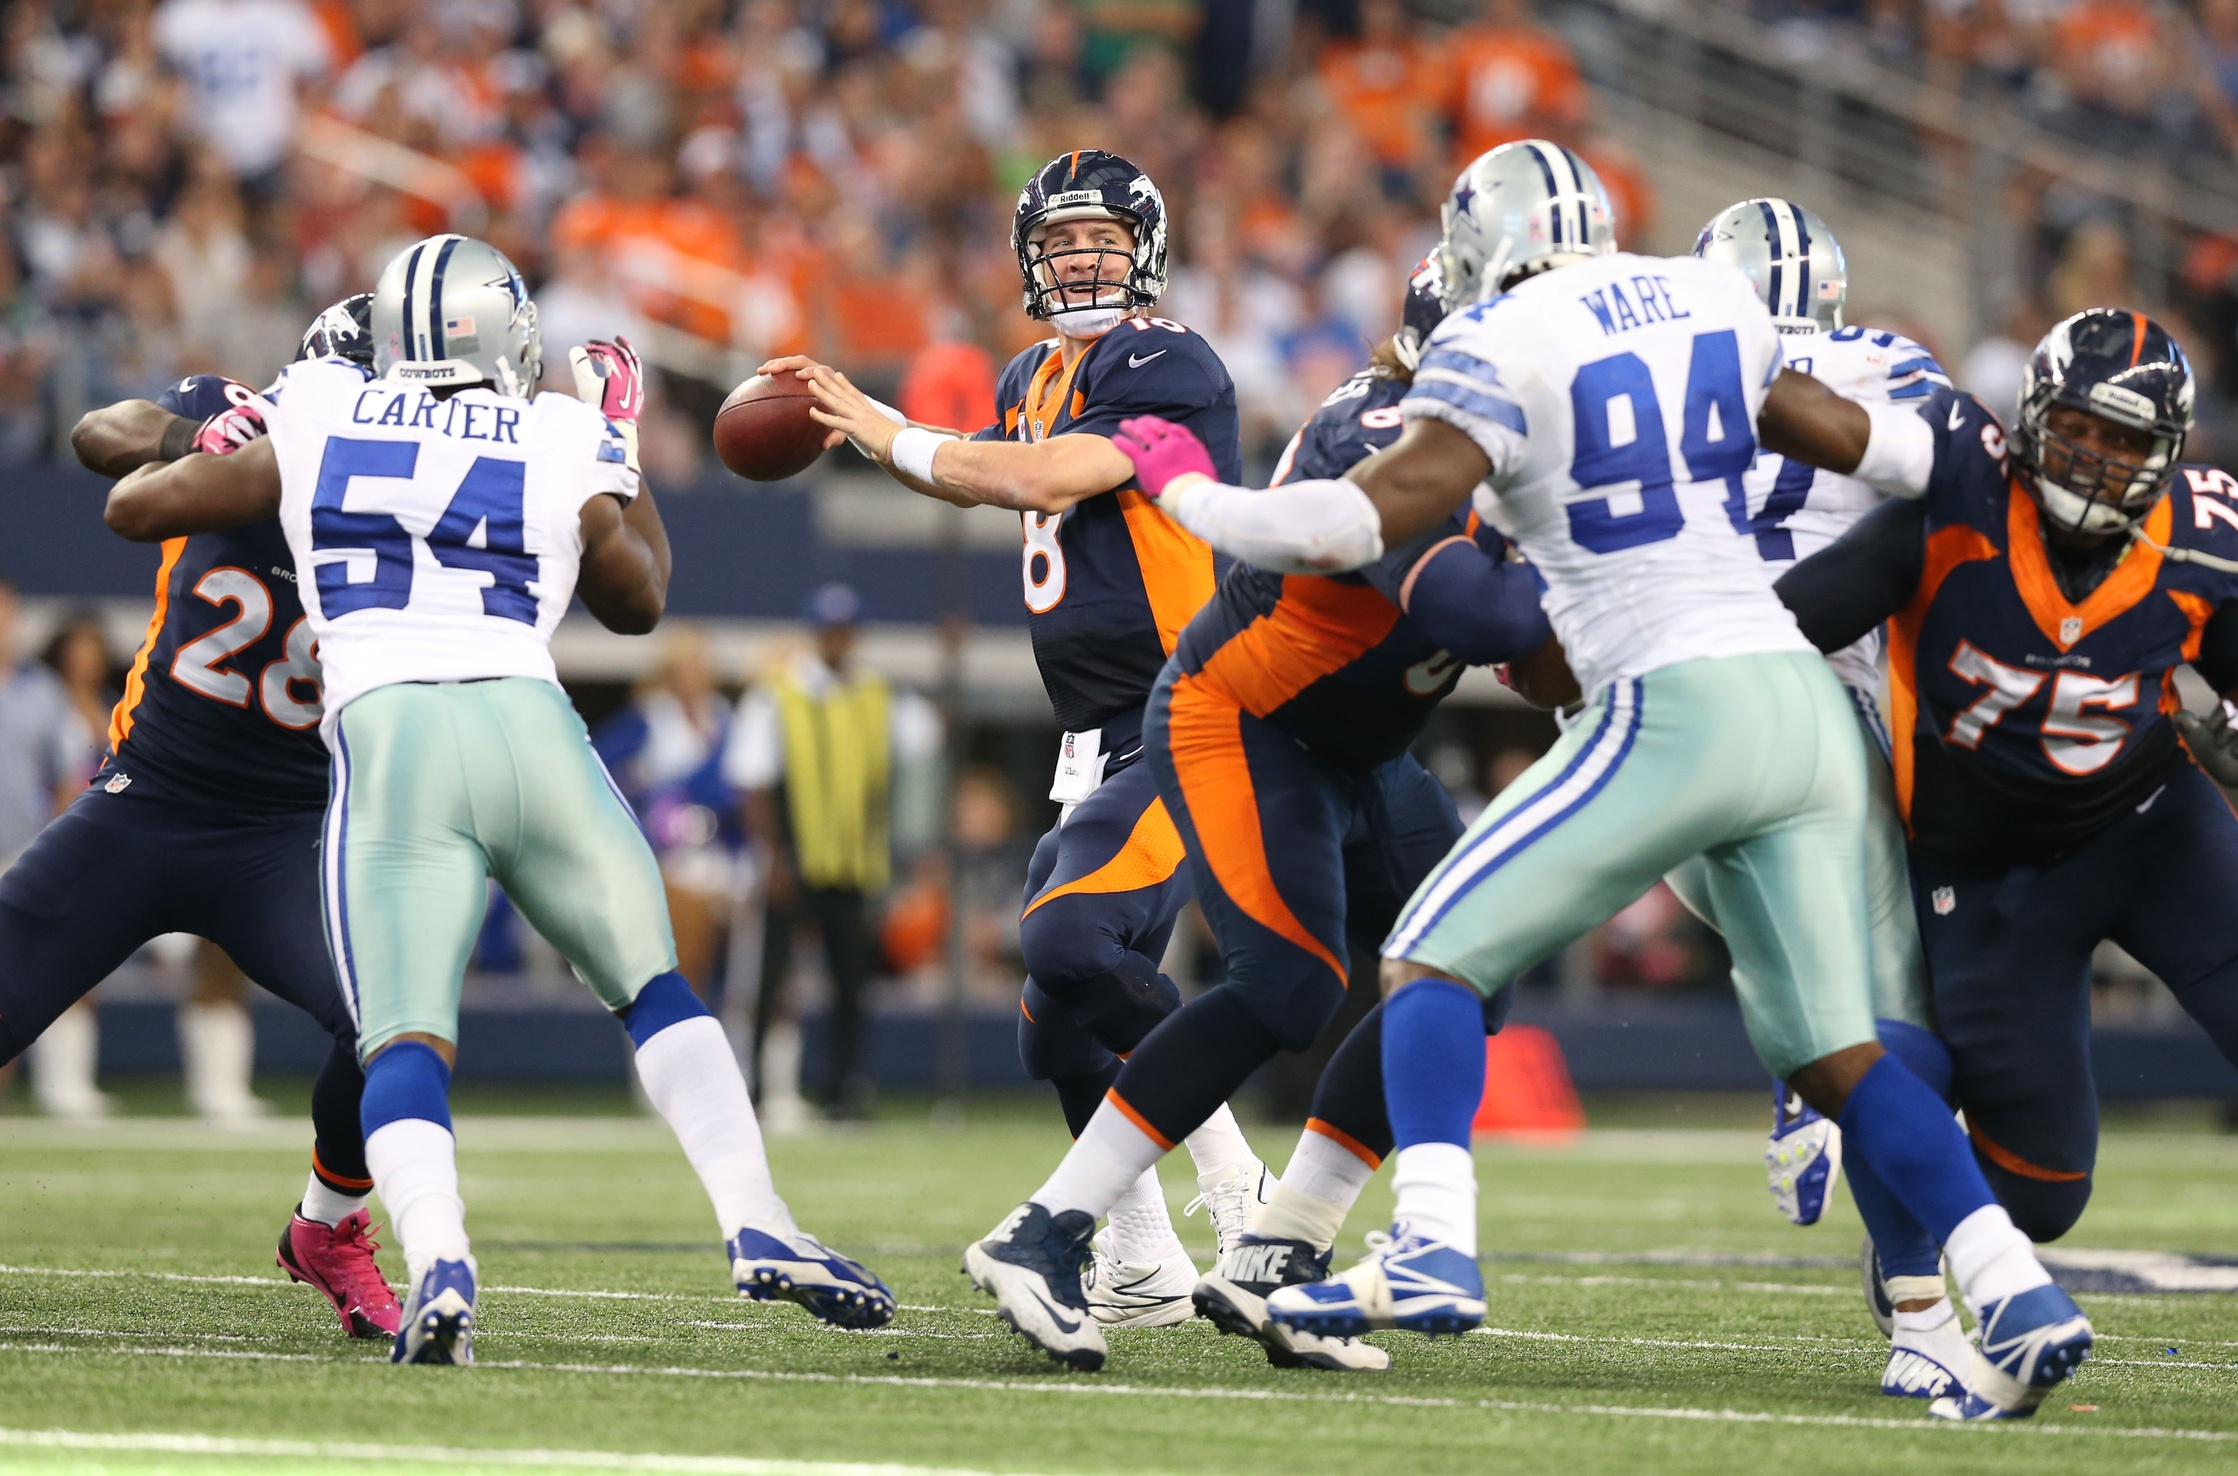 Tony Romo had the historic performance, but Peyton Manning came out on top.